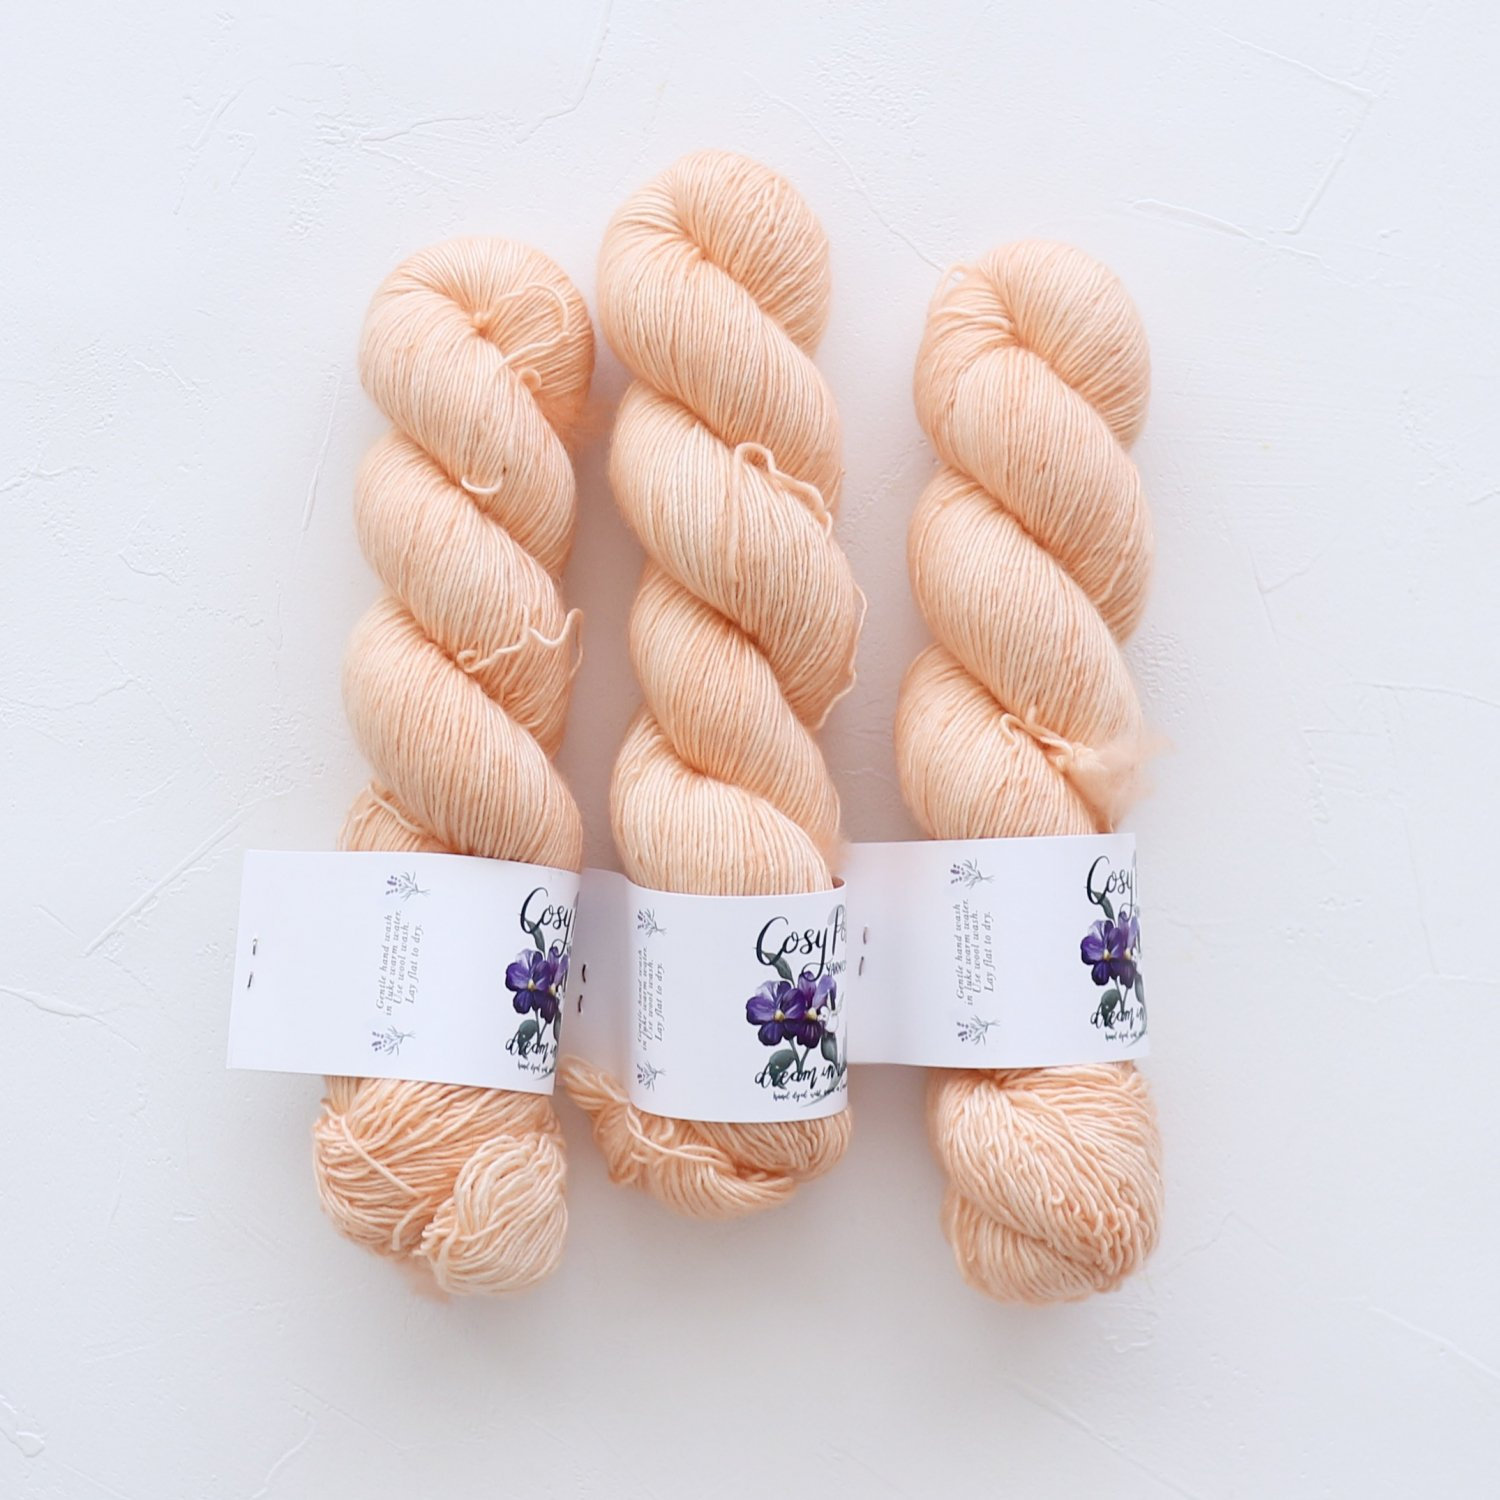 【Cosy Posy Yarn】<br>CLOUD<br>Tulle